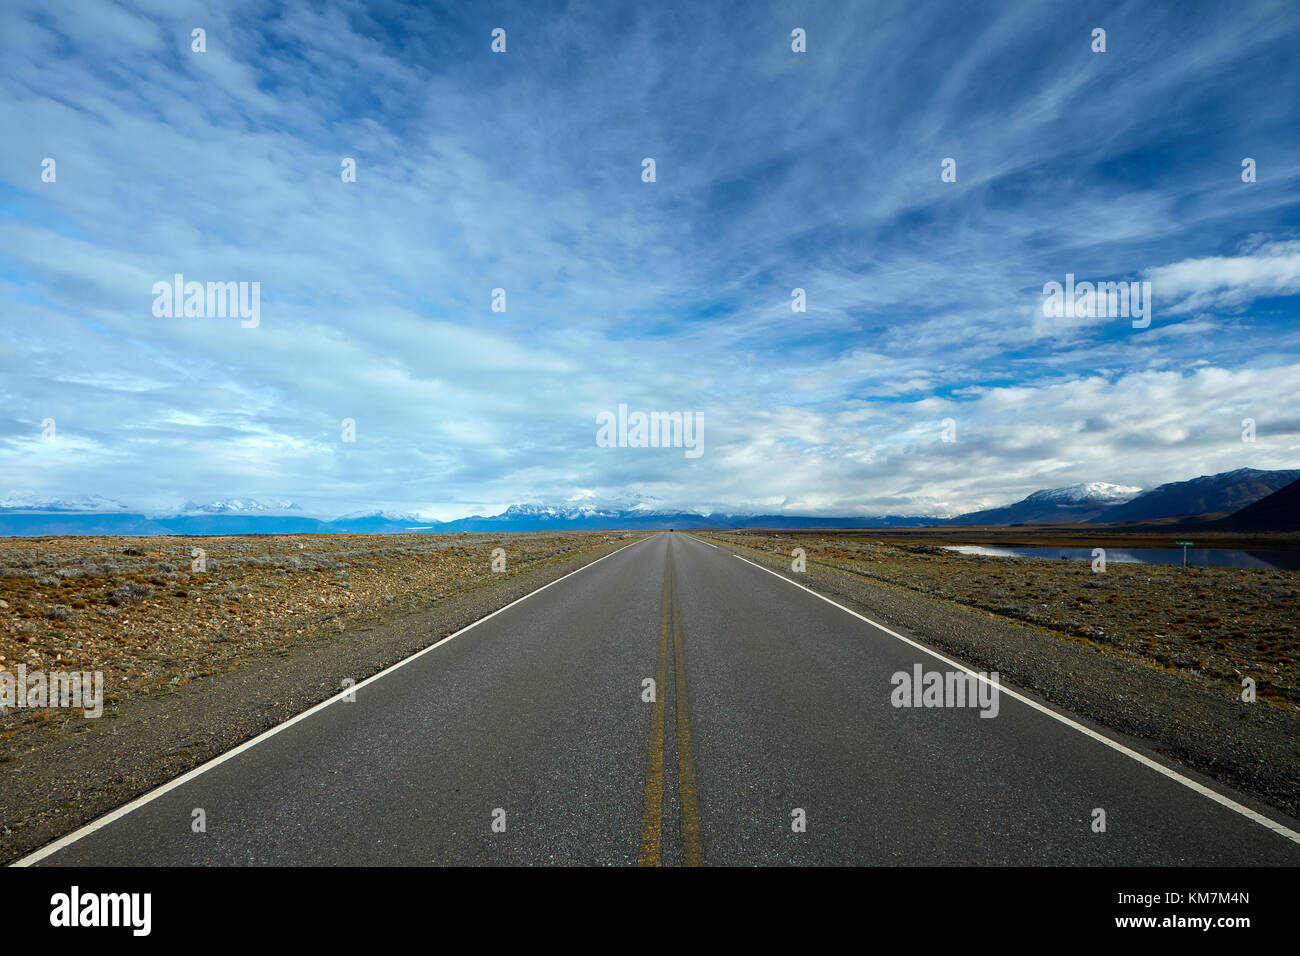 Road from El Calafate to El Chalten, Patagonia, Argentina, South America - Stock Image